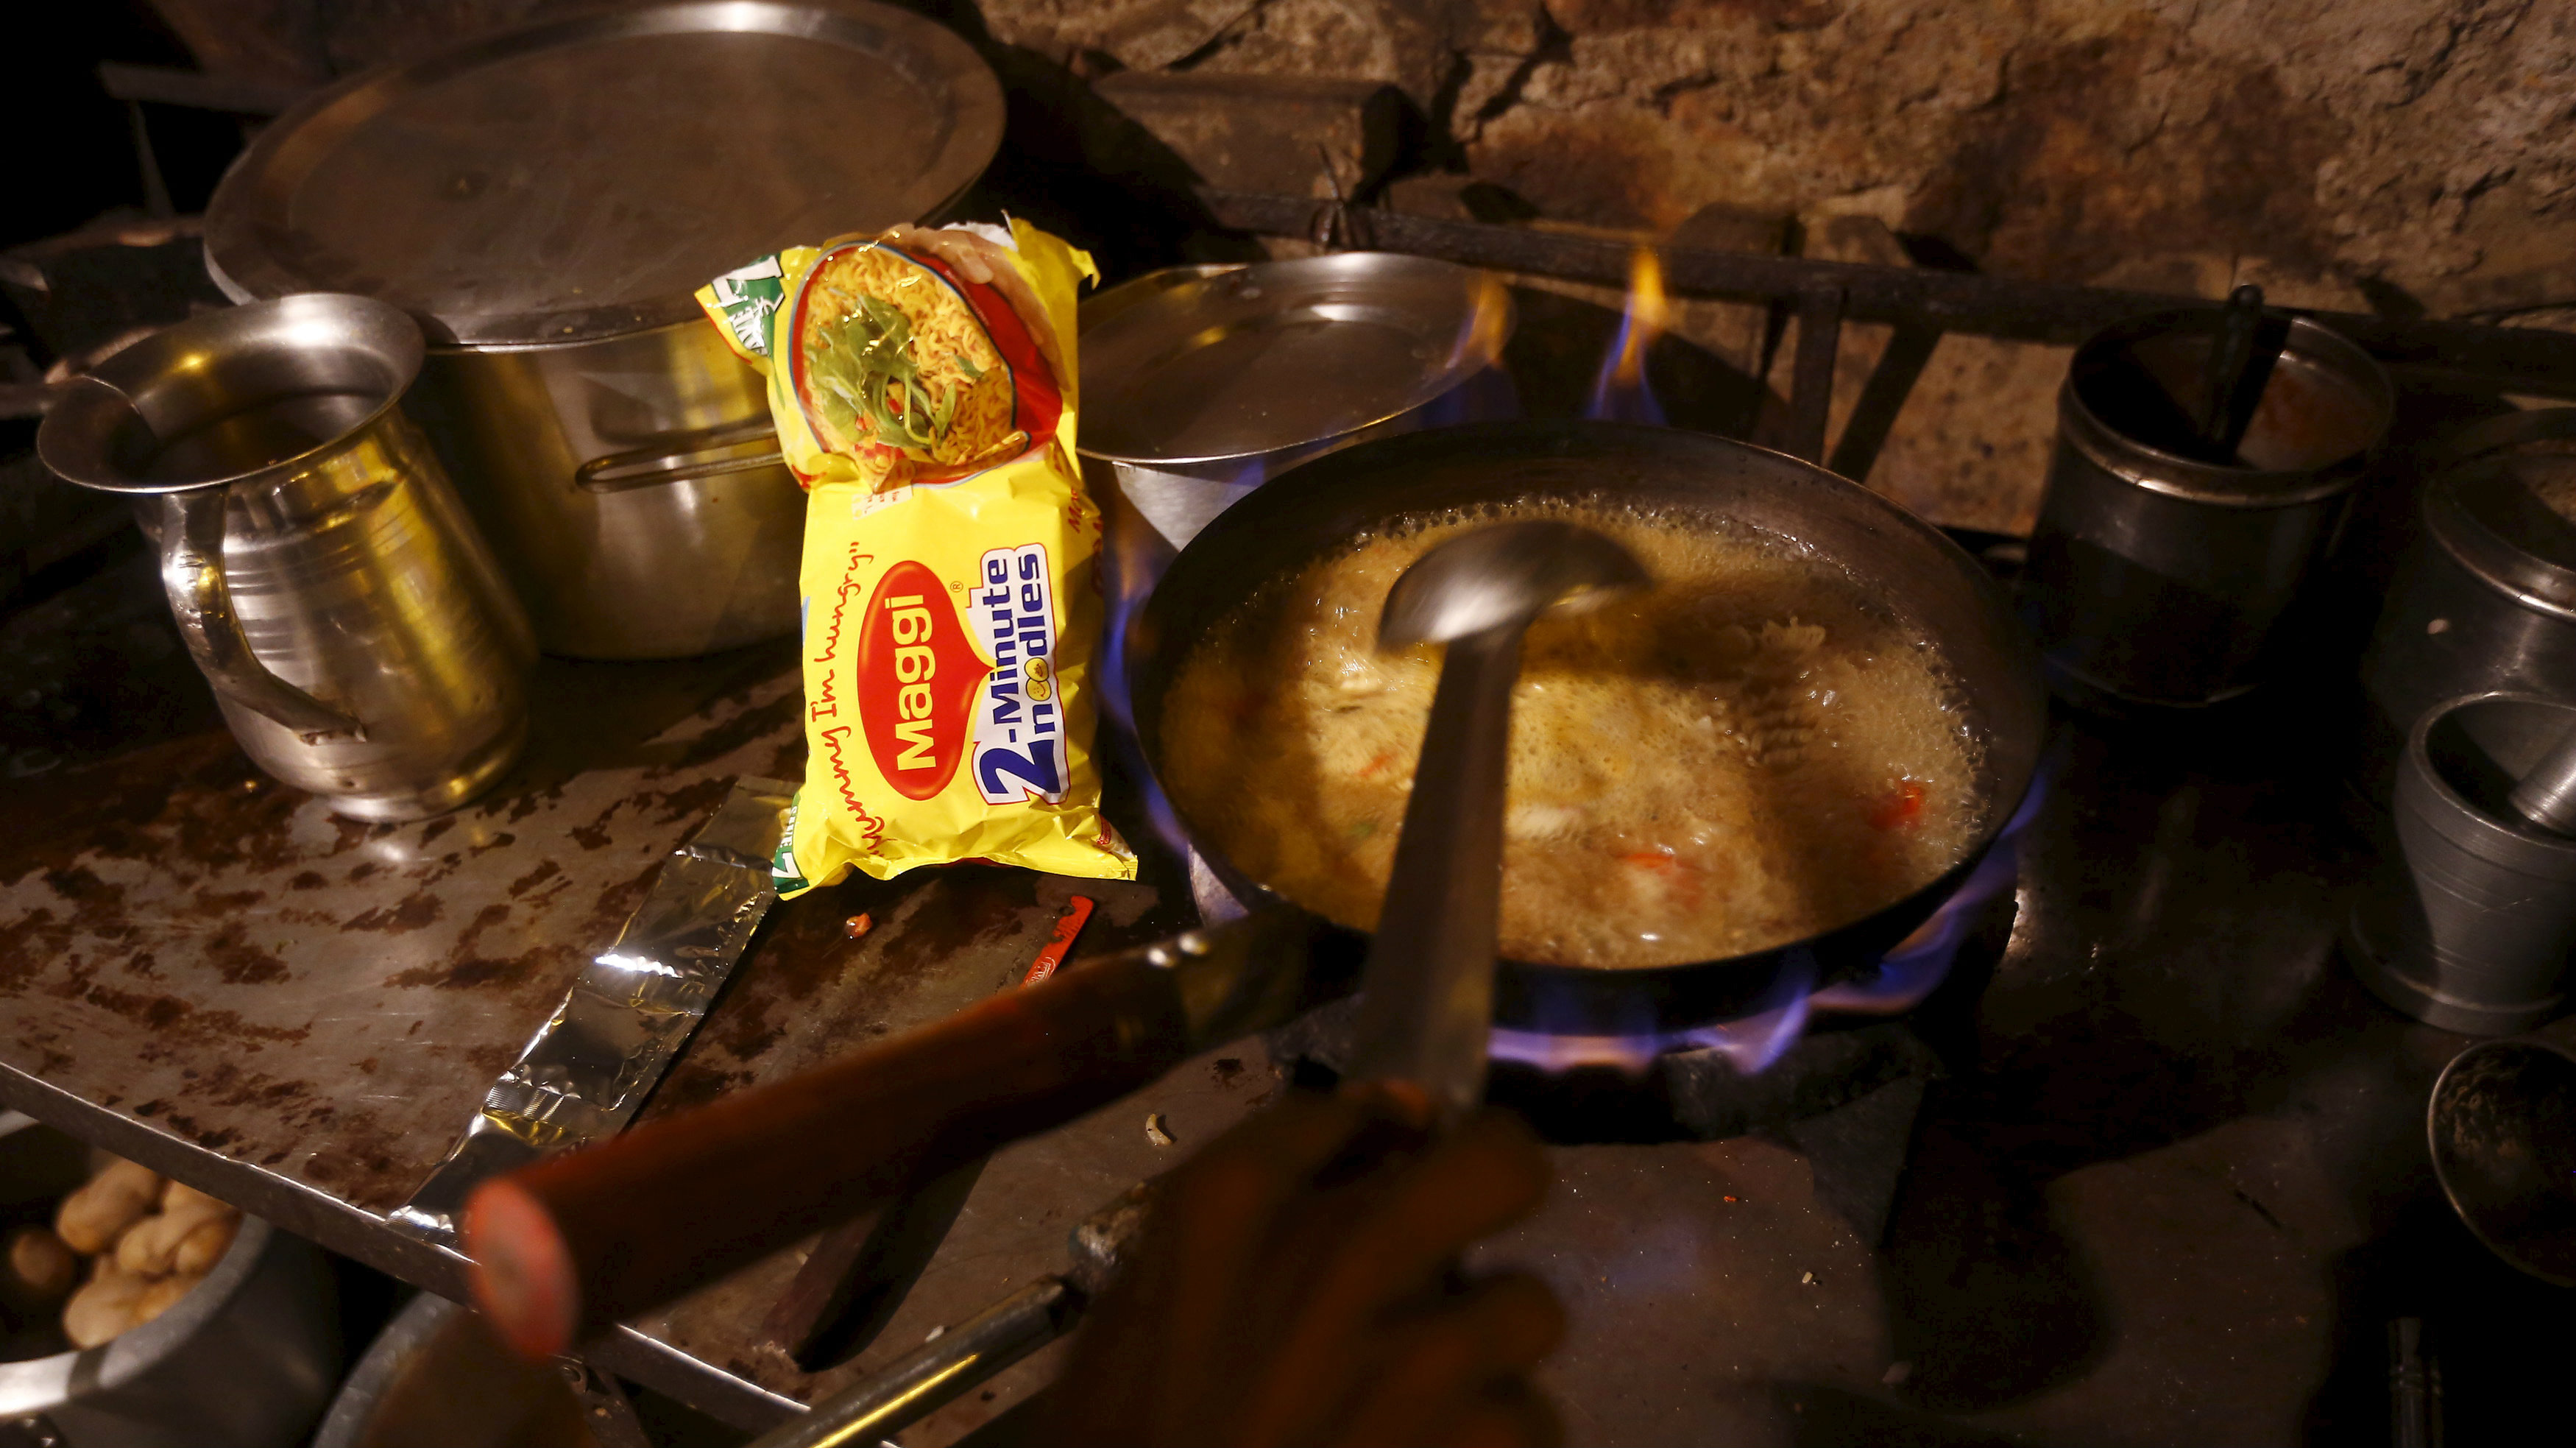 A vendor prepares Maggi noodles at a roadside eatery in New Delhi, India, June 7, 2015